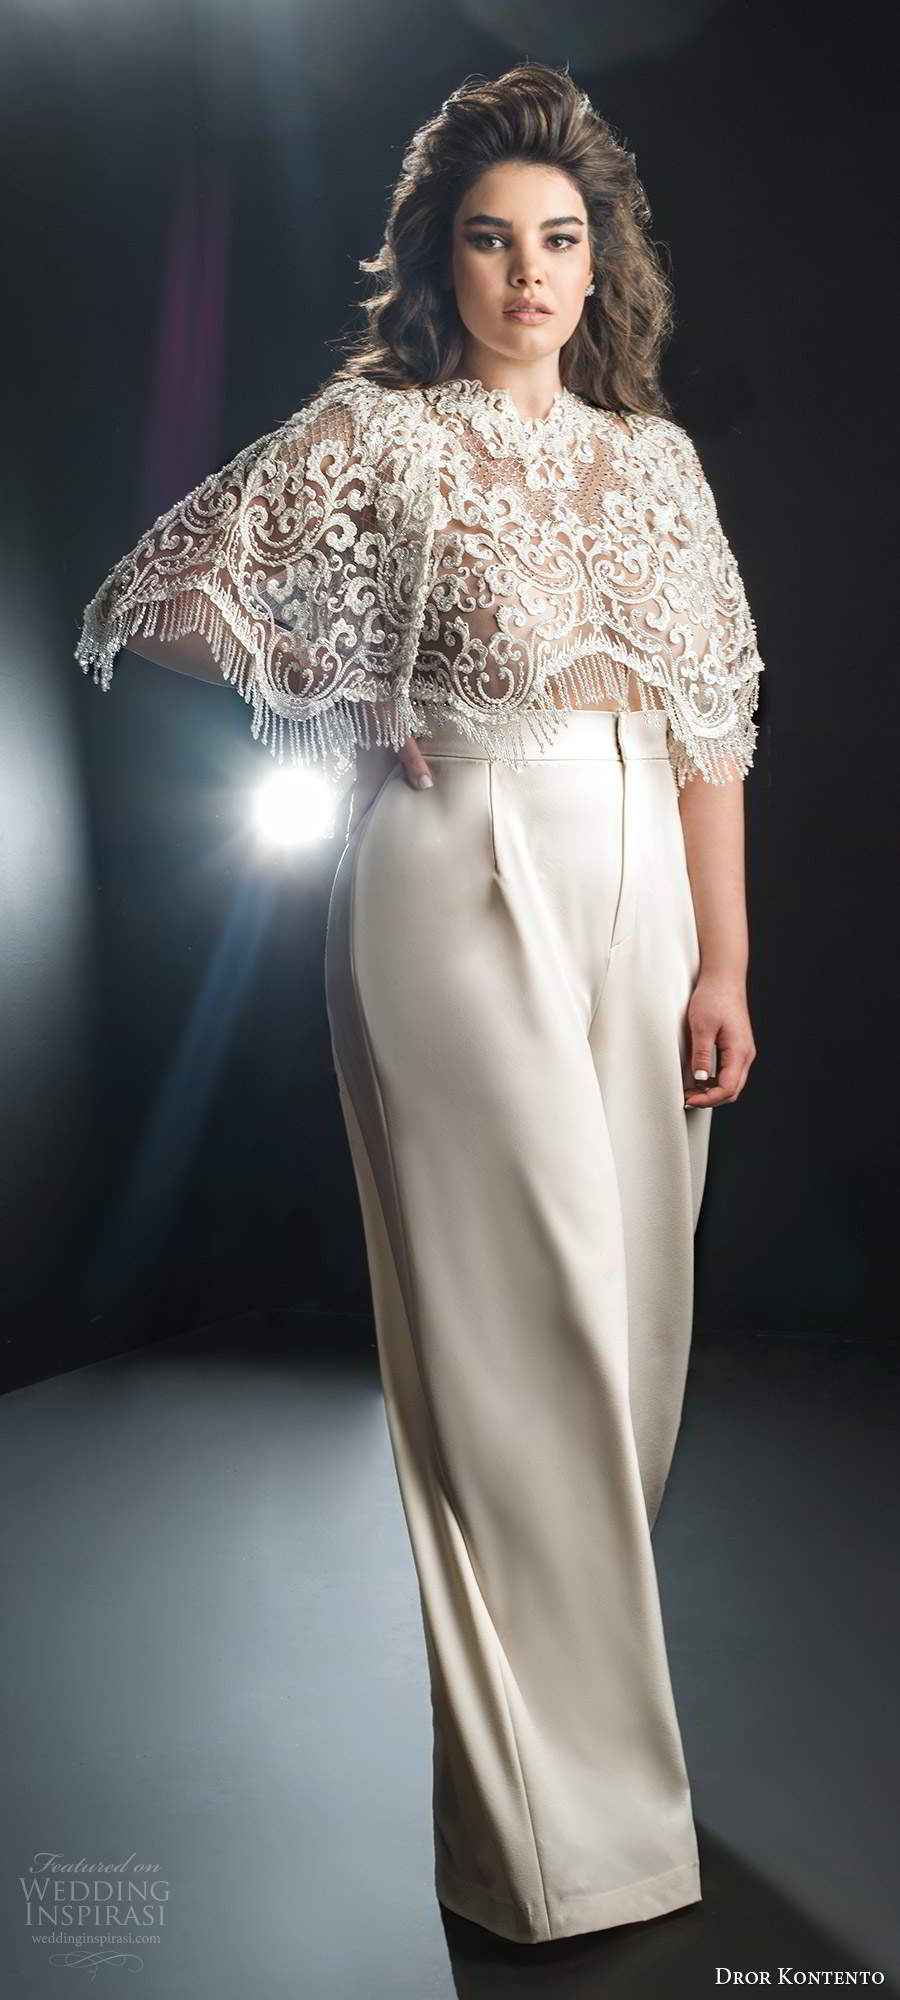 dror kontento 2019 bridal illusion flutter sleeves capelet heavily embellished bodice pants wedding dress (4) mv